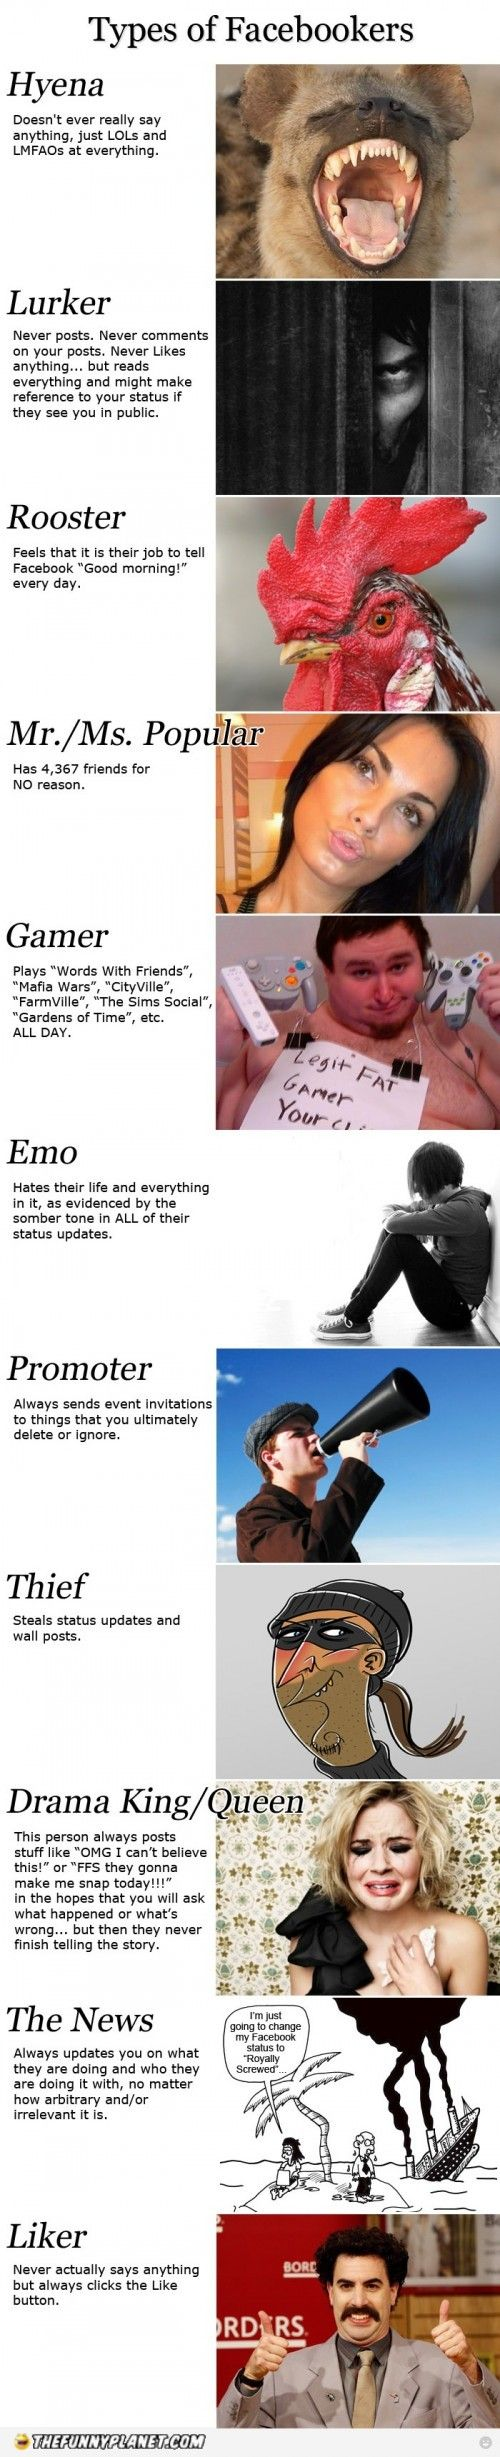 i dont facebook but this is funny!!!!! Types Of Facebookers!